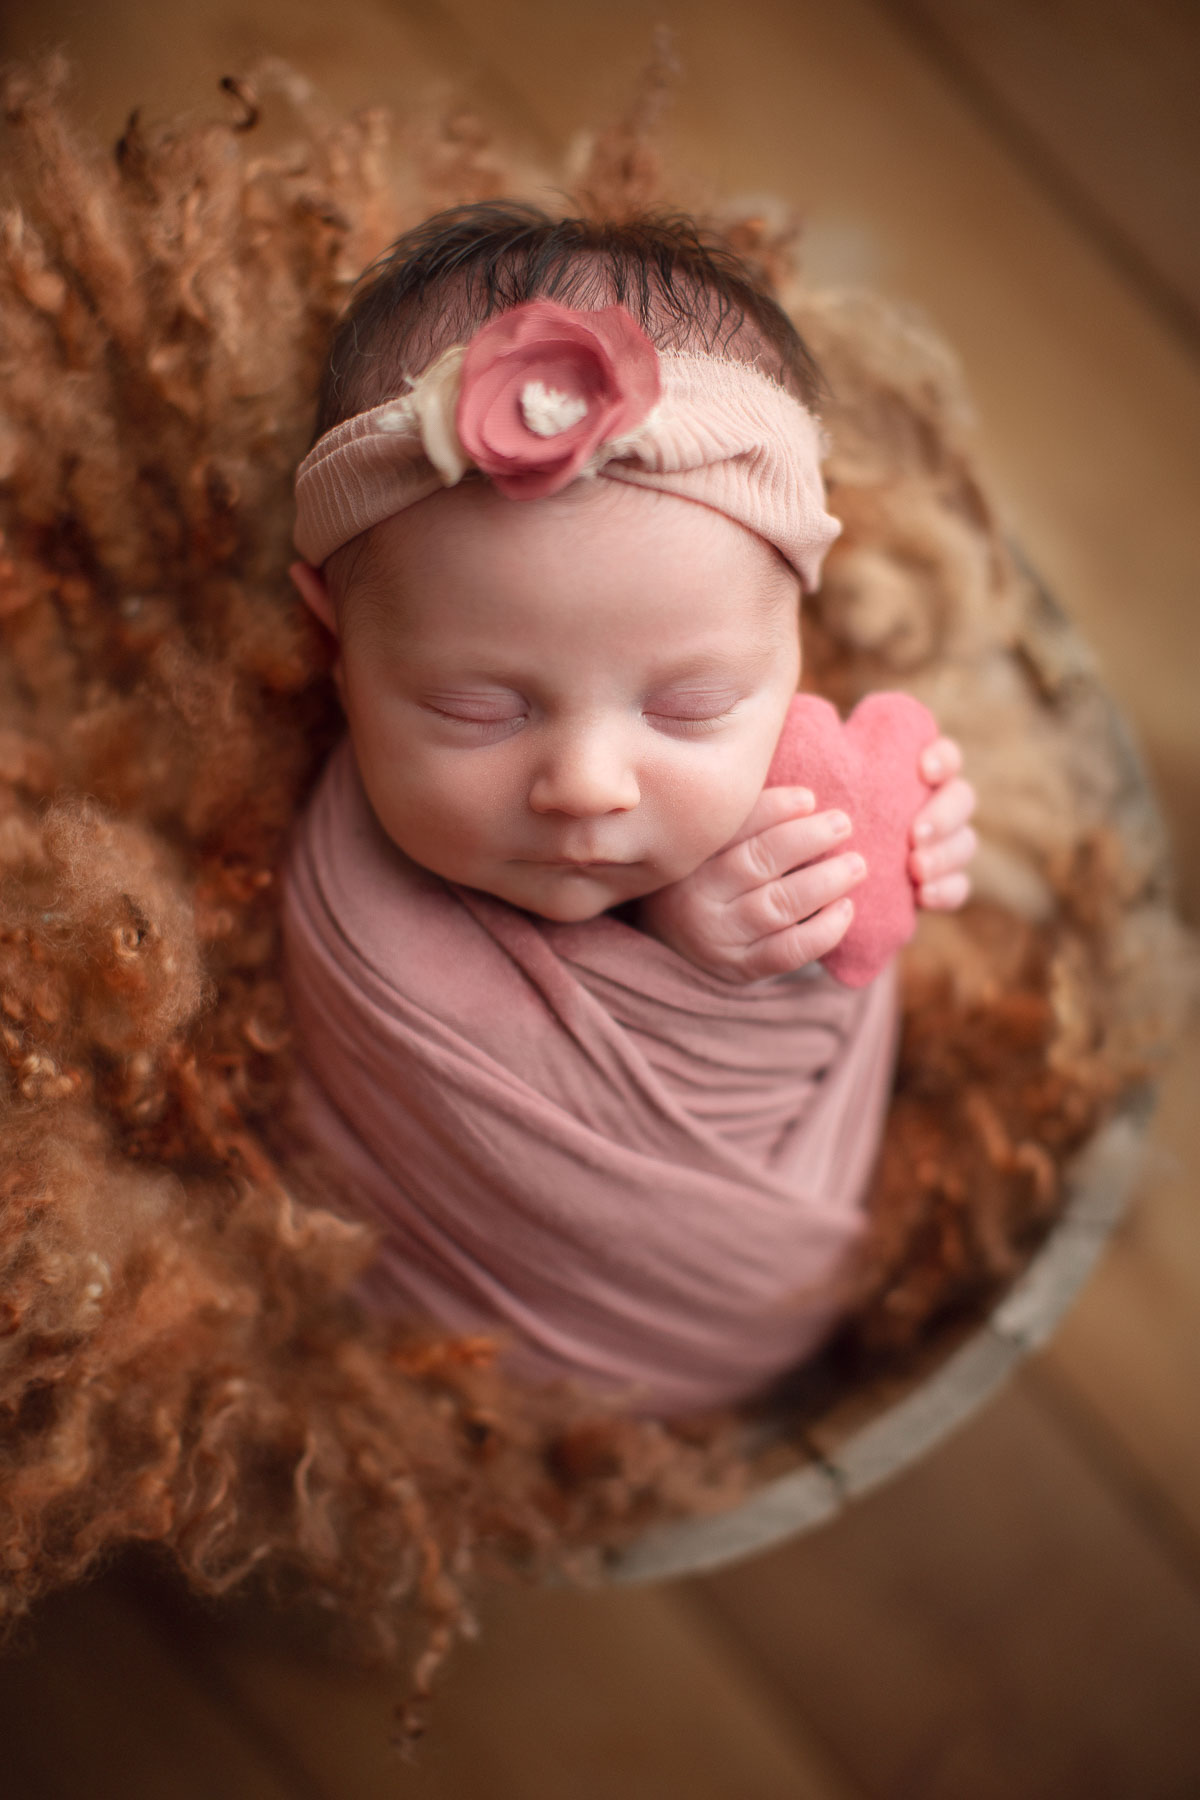 affordable vancouver newborn photography - baby girl holding heart